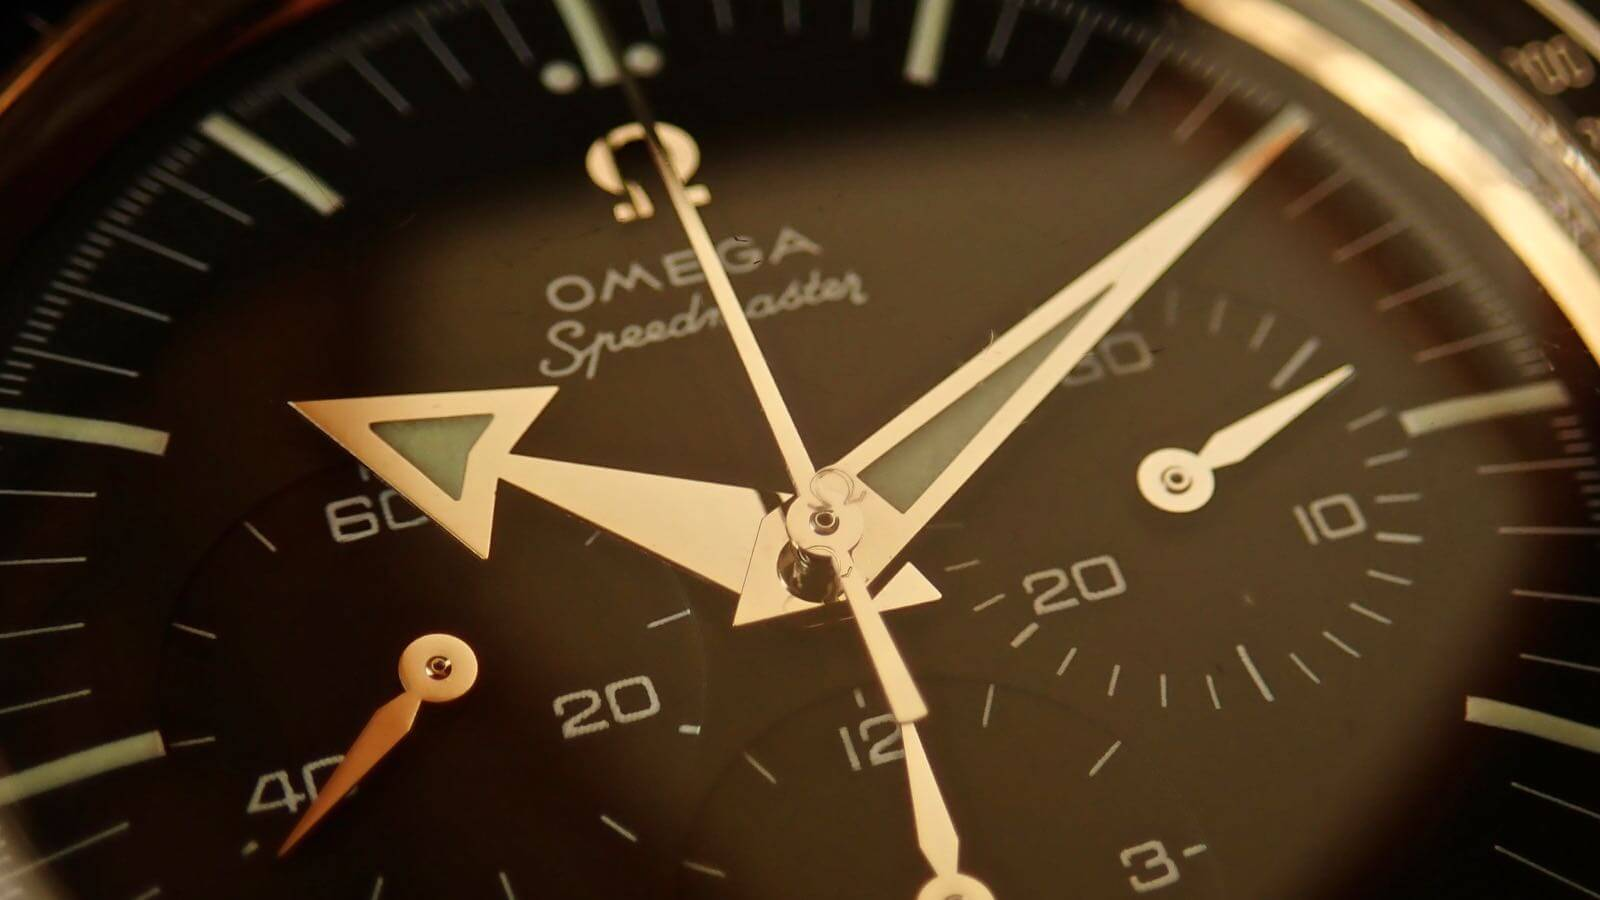 0029 The first watch I went to the moon  Omega Speedmaster story 09